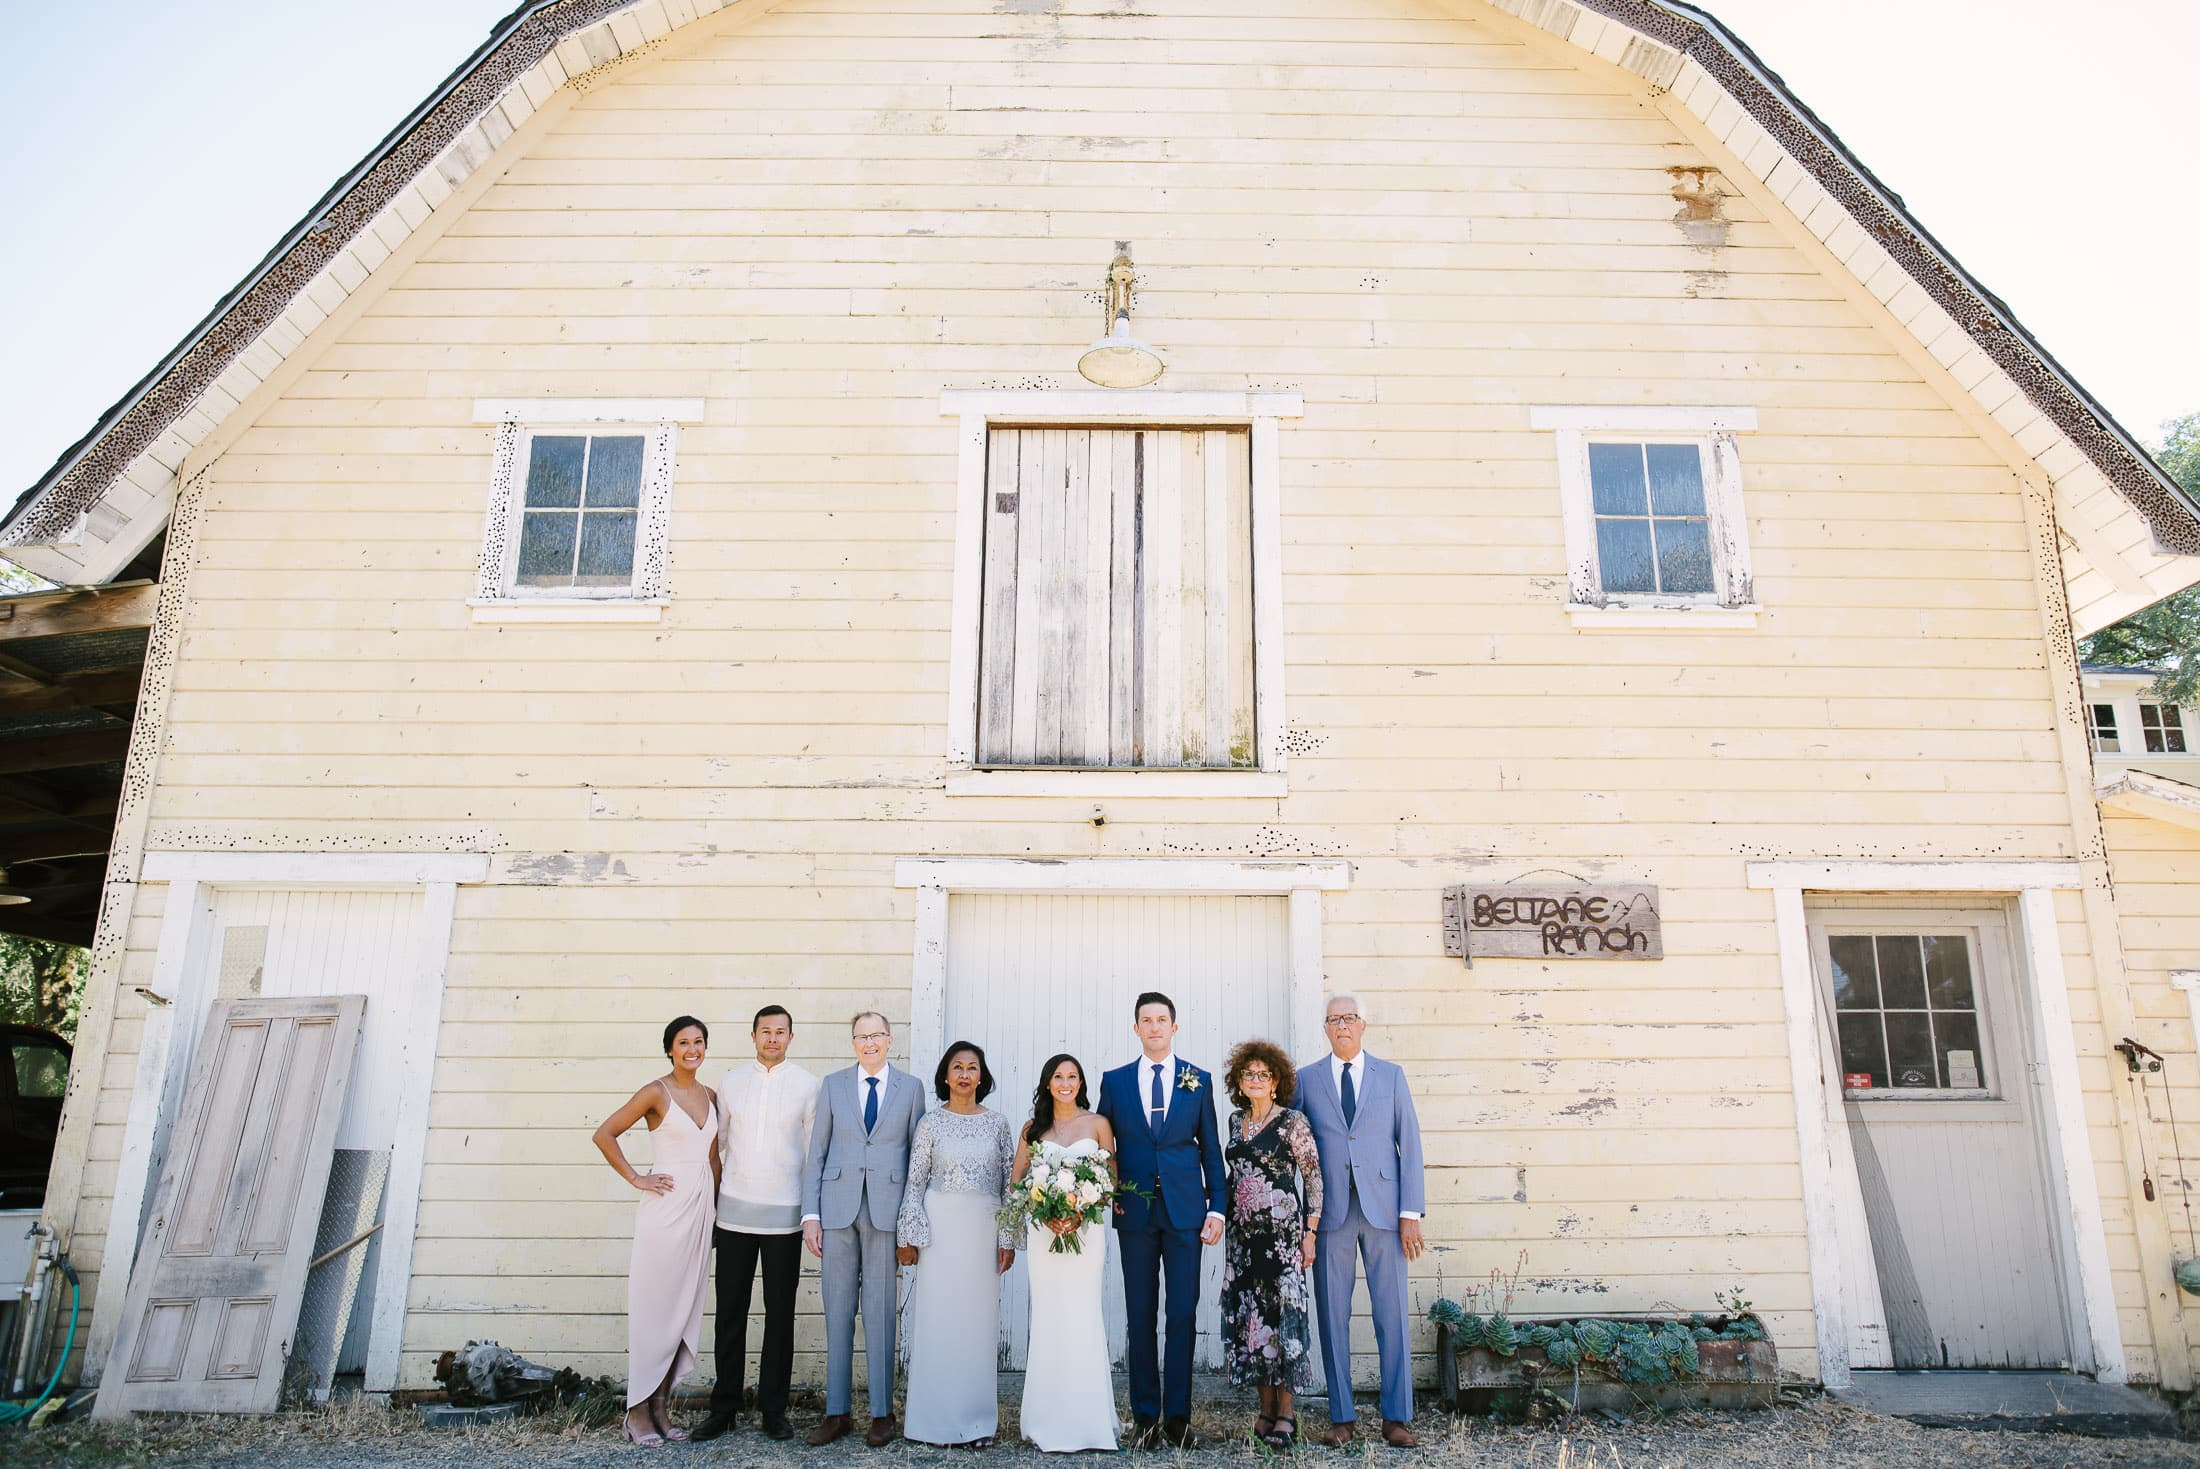 Beltane Ranch Wedding Family Portrait